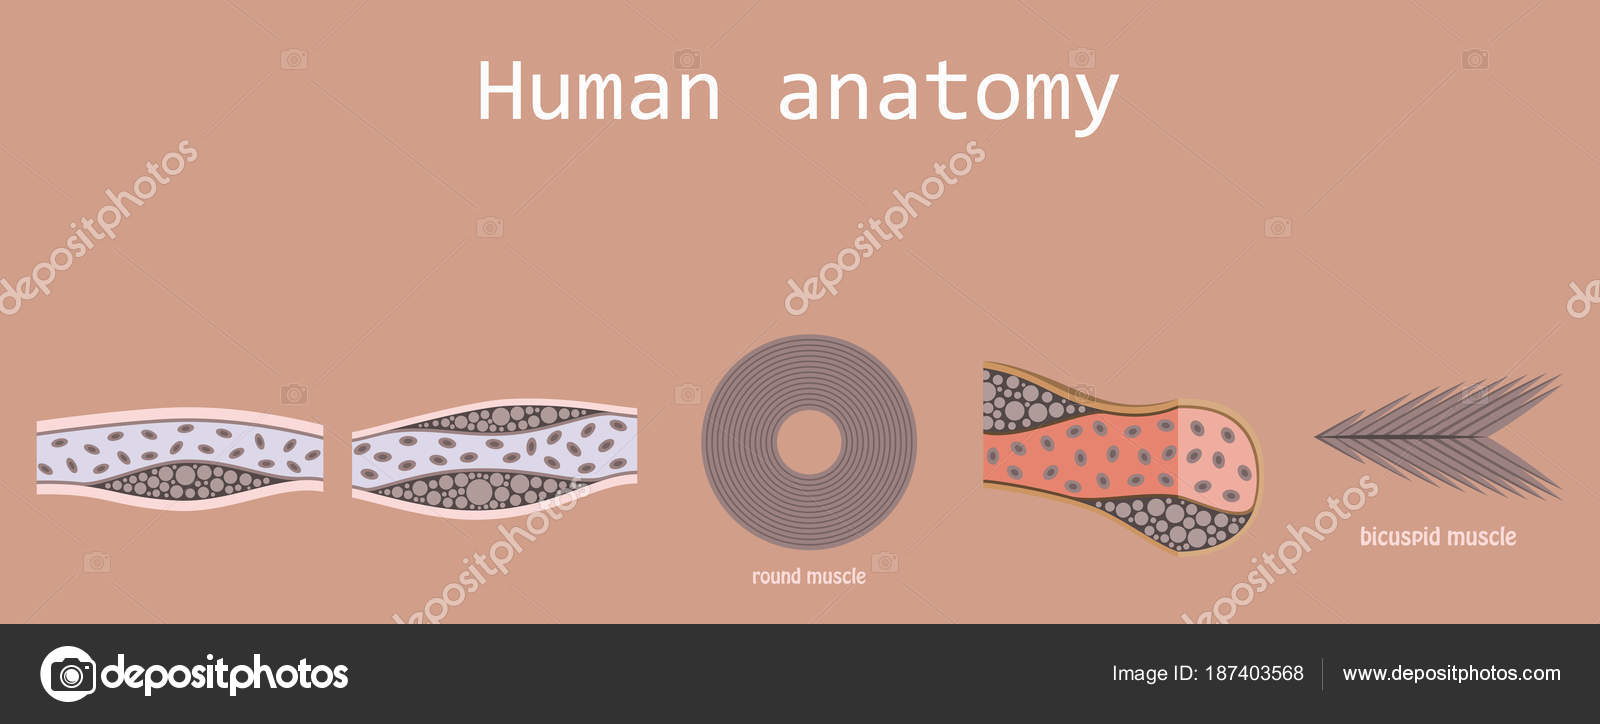 hight resolution of types of muscle tissue of human body diagram including cardiac skeletal smooth with example of heart